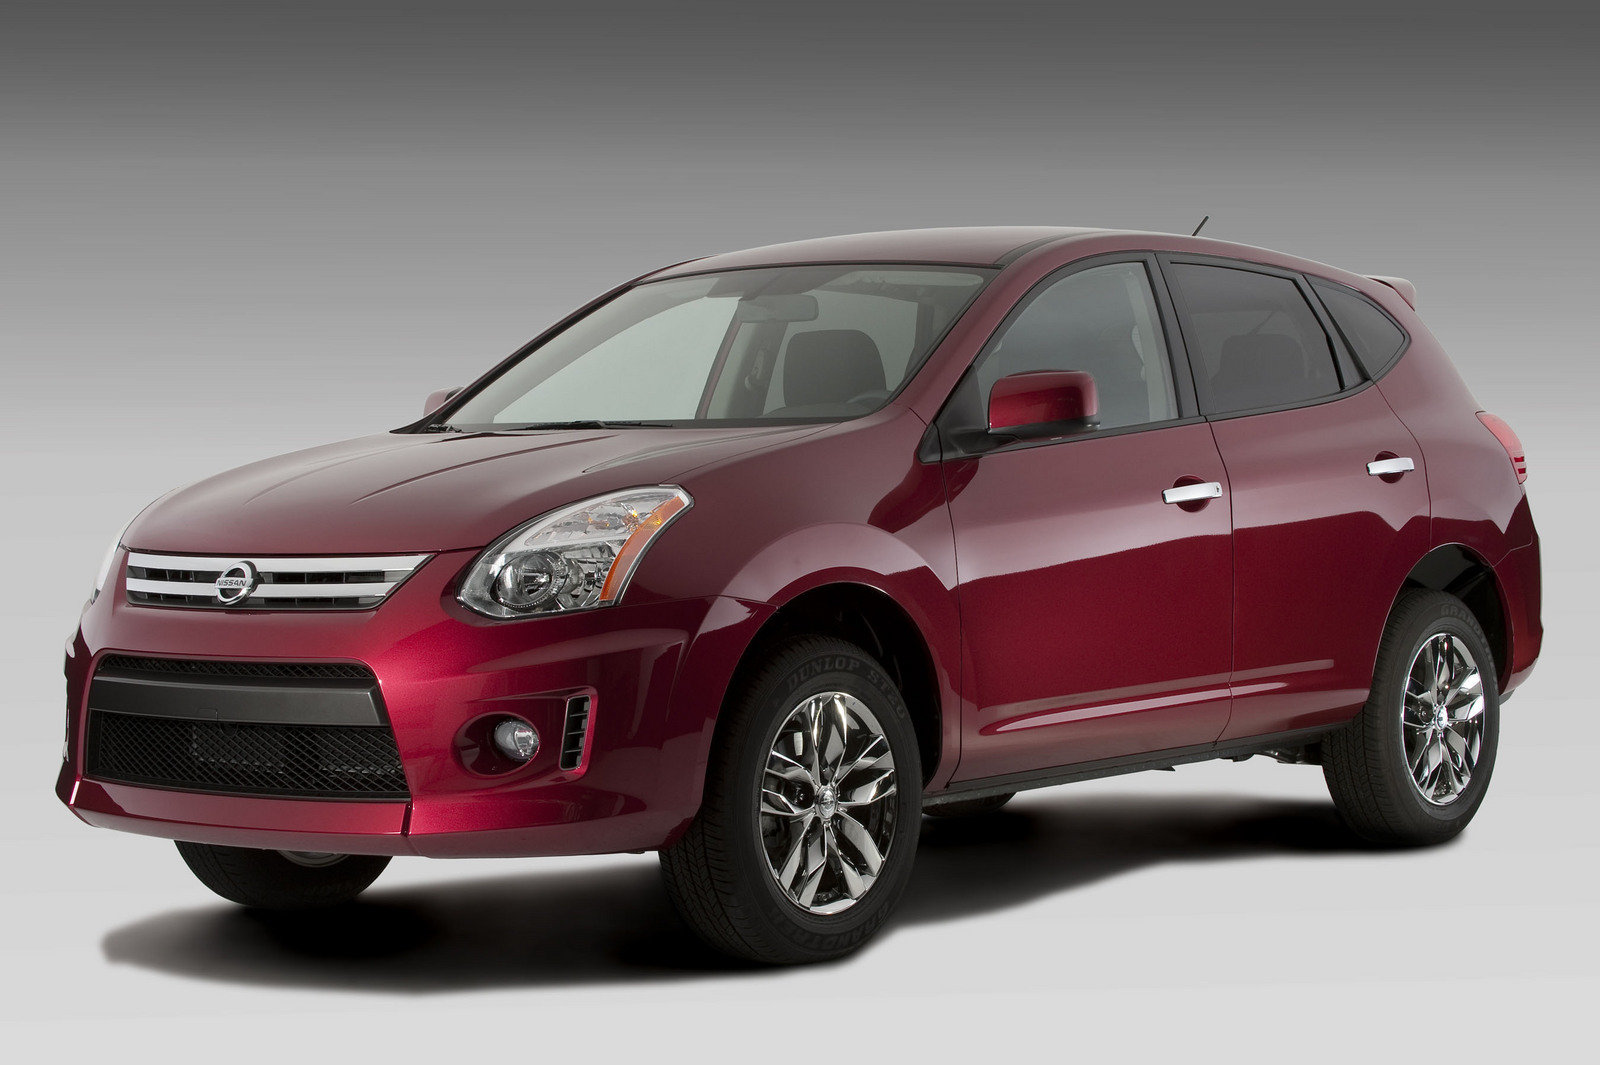 Nissan Rogue Suv >> 2010 Nissan Rogue Krom Edition | Top Speed